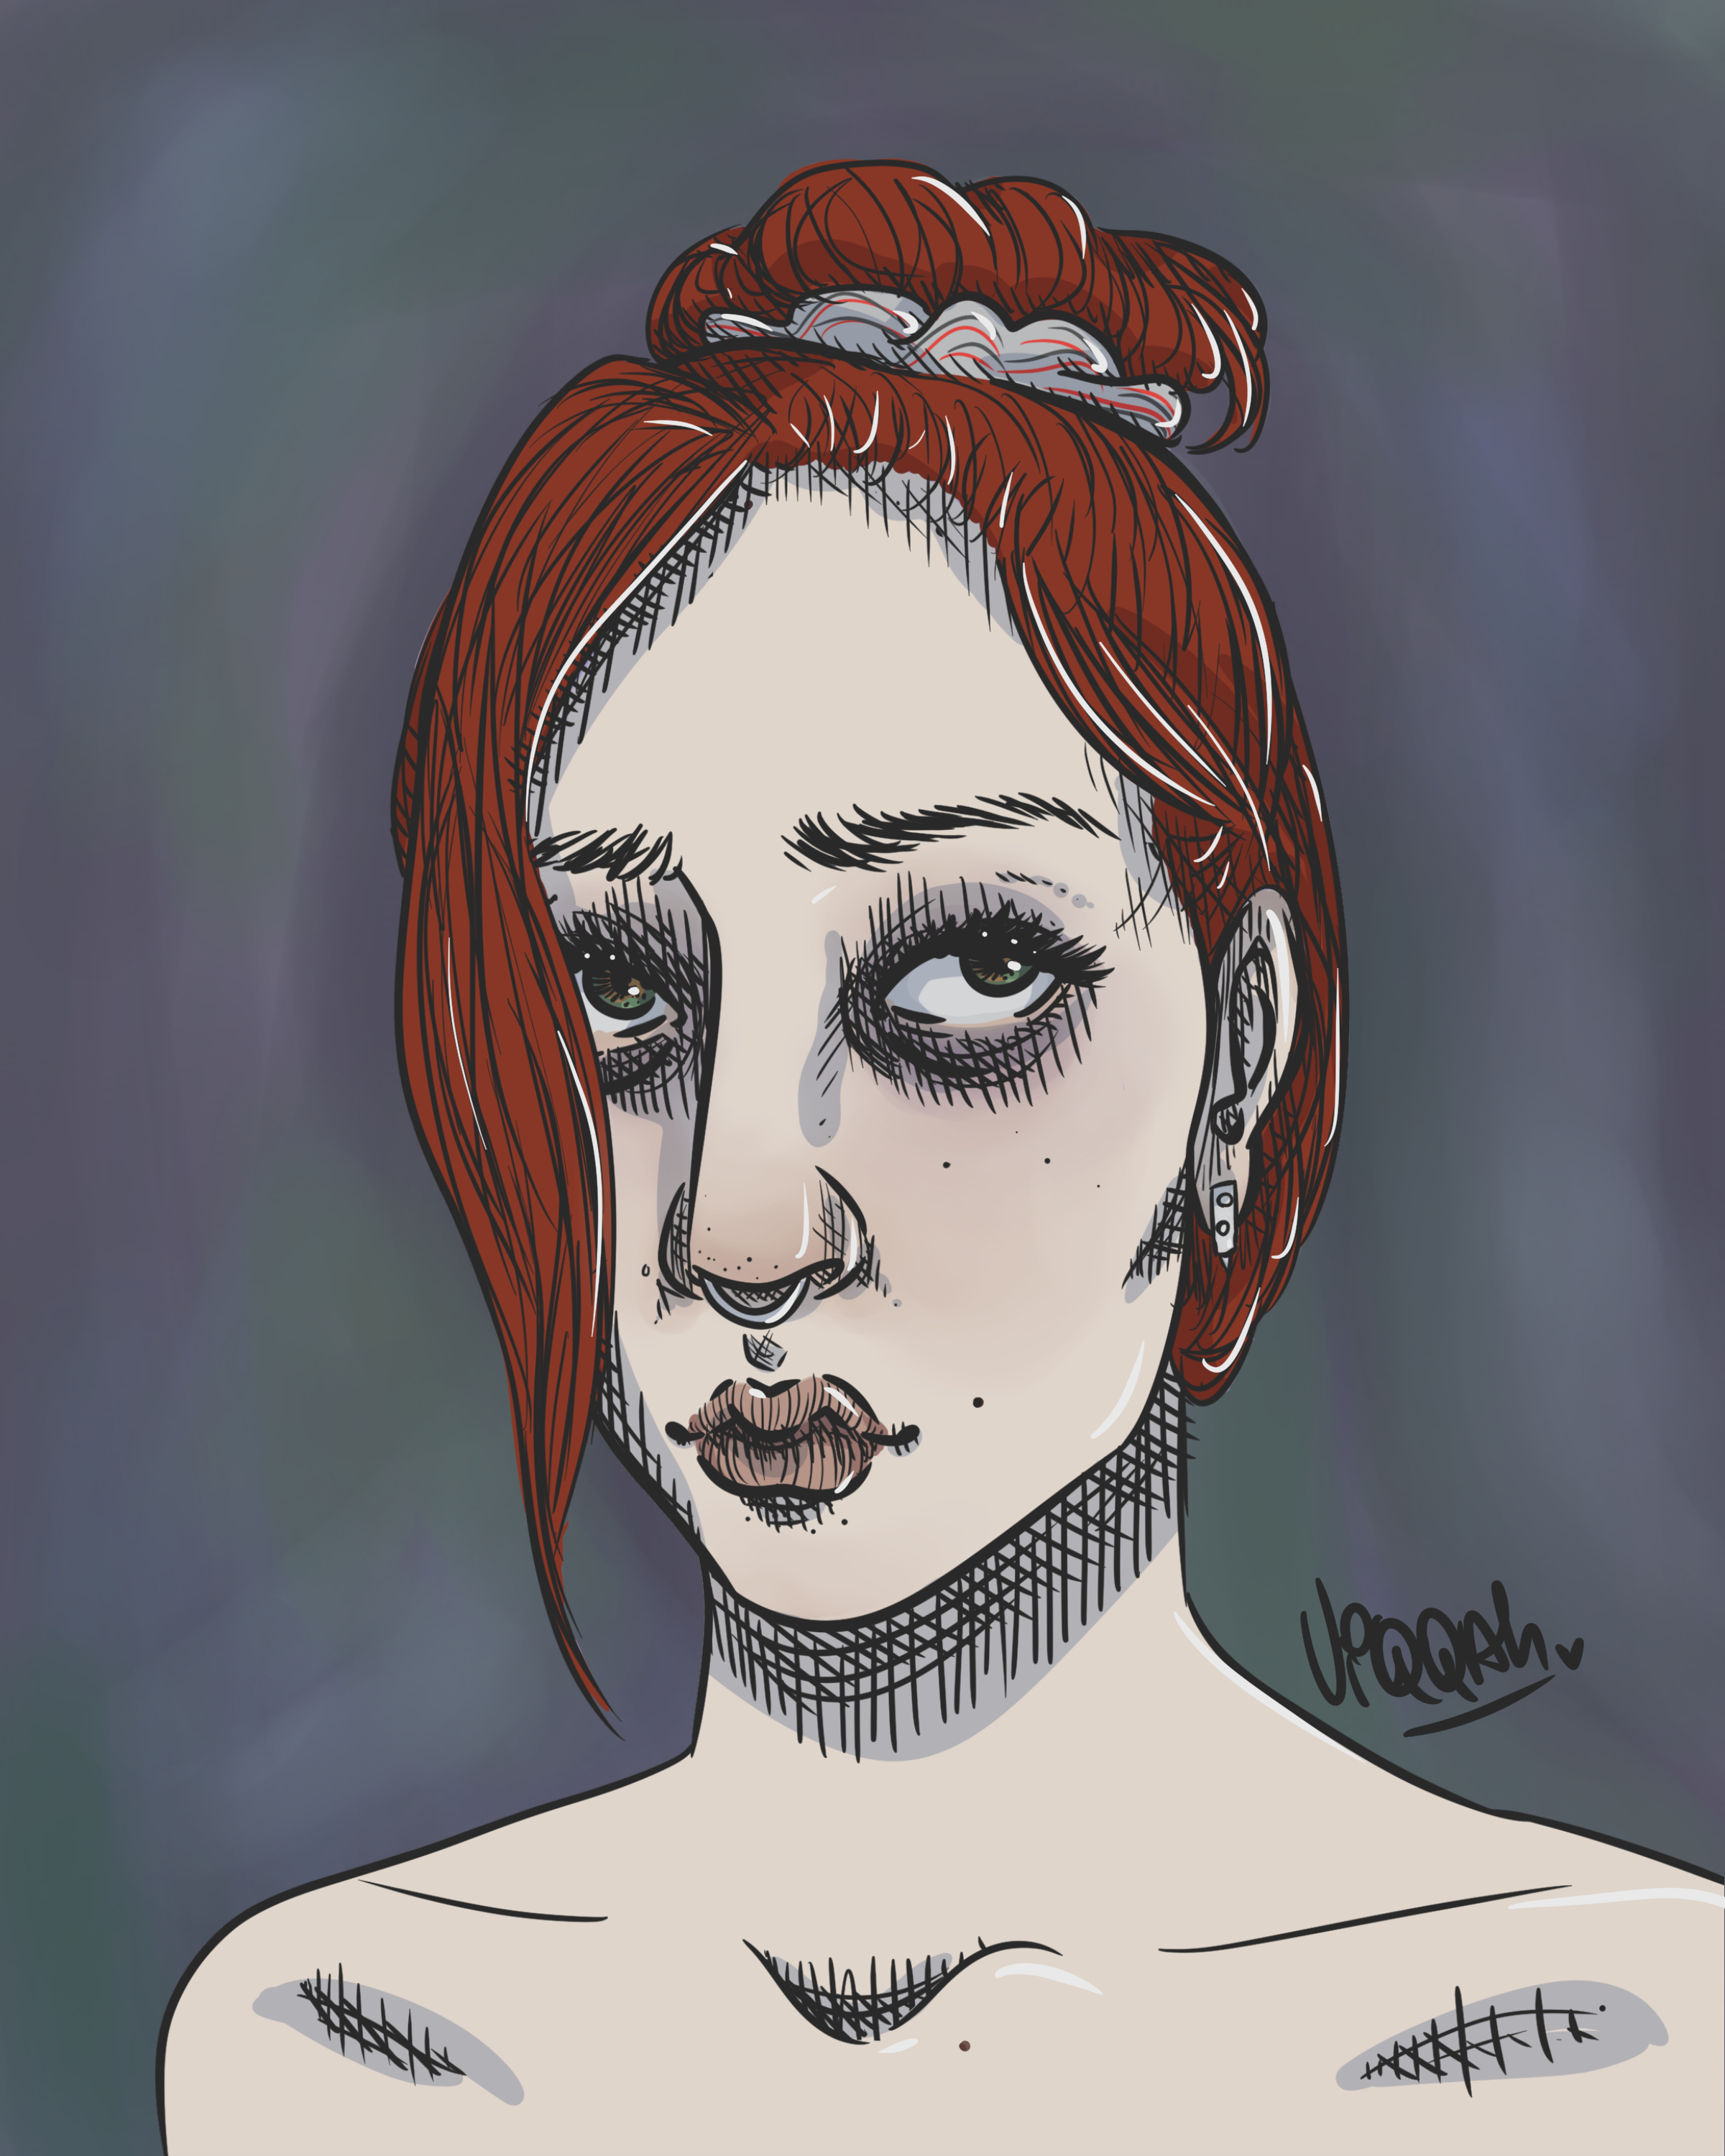 (yet another) self-portrait